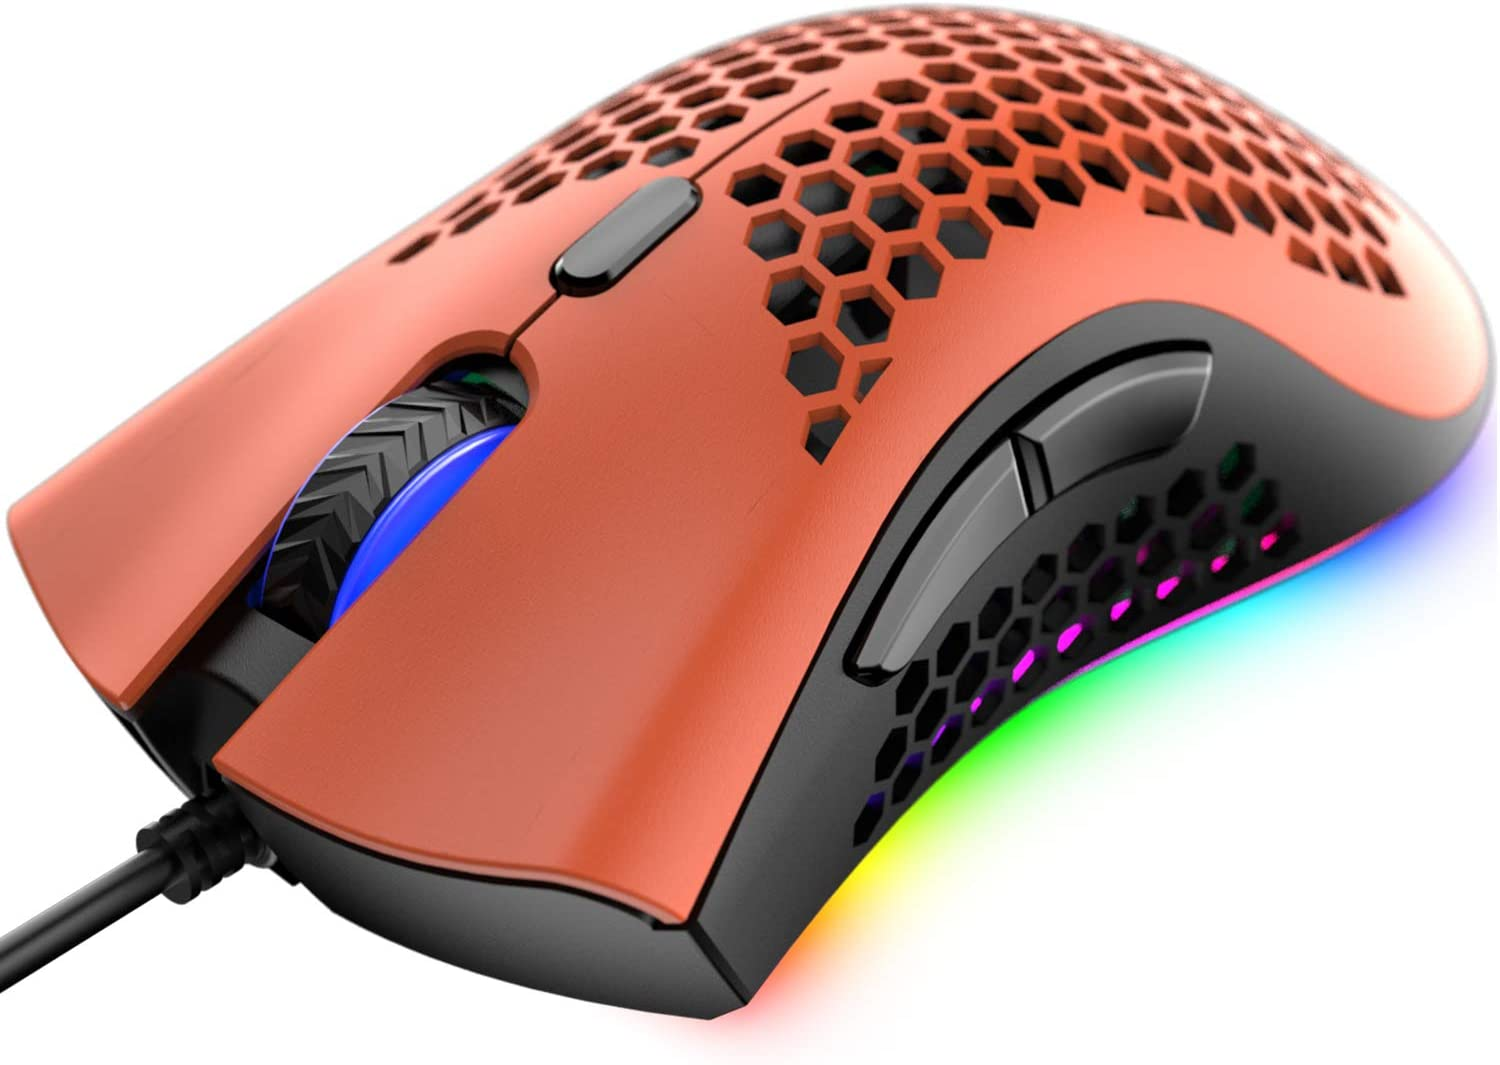 Wired Lightweight Gaming Mouse,Ultralight Honeycomb Shell Ultraweave Cable,7 Buttons Programmable Driver,Pixart 3325 12000 DPI,10 RGB Backlit Computer Mouse for PC Gamers and Xbox and PS4 Users(Red)